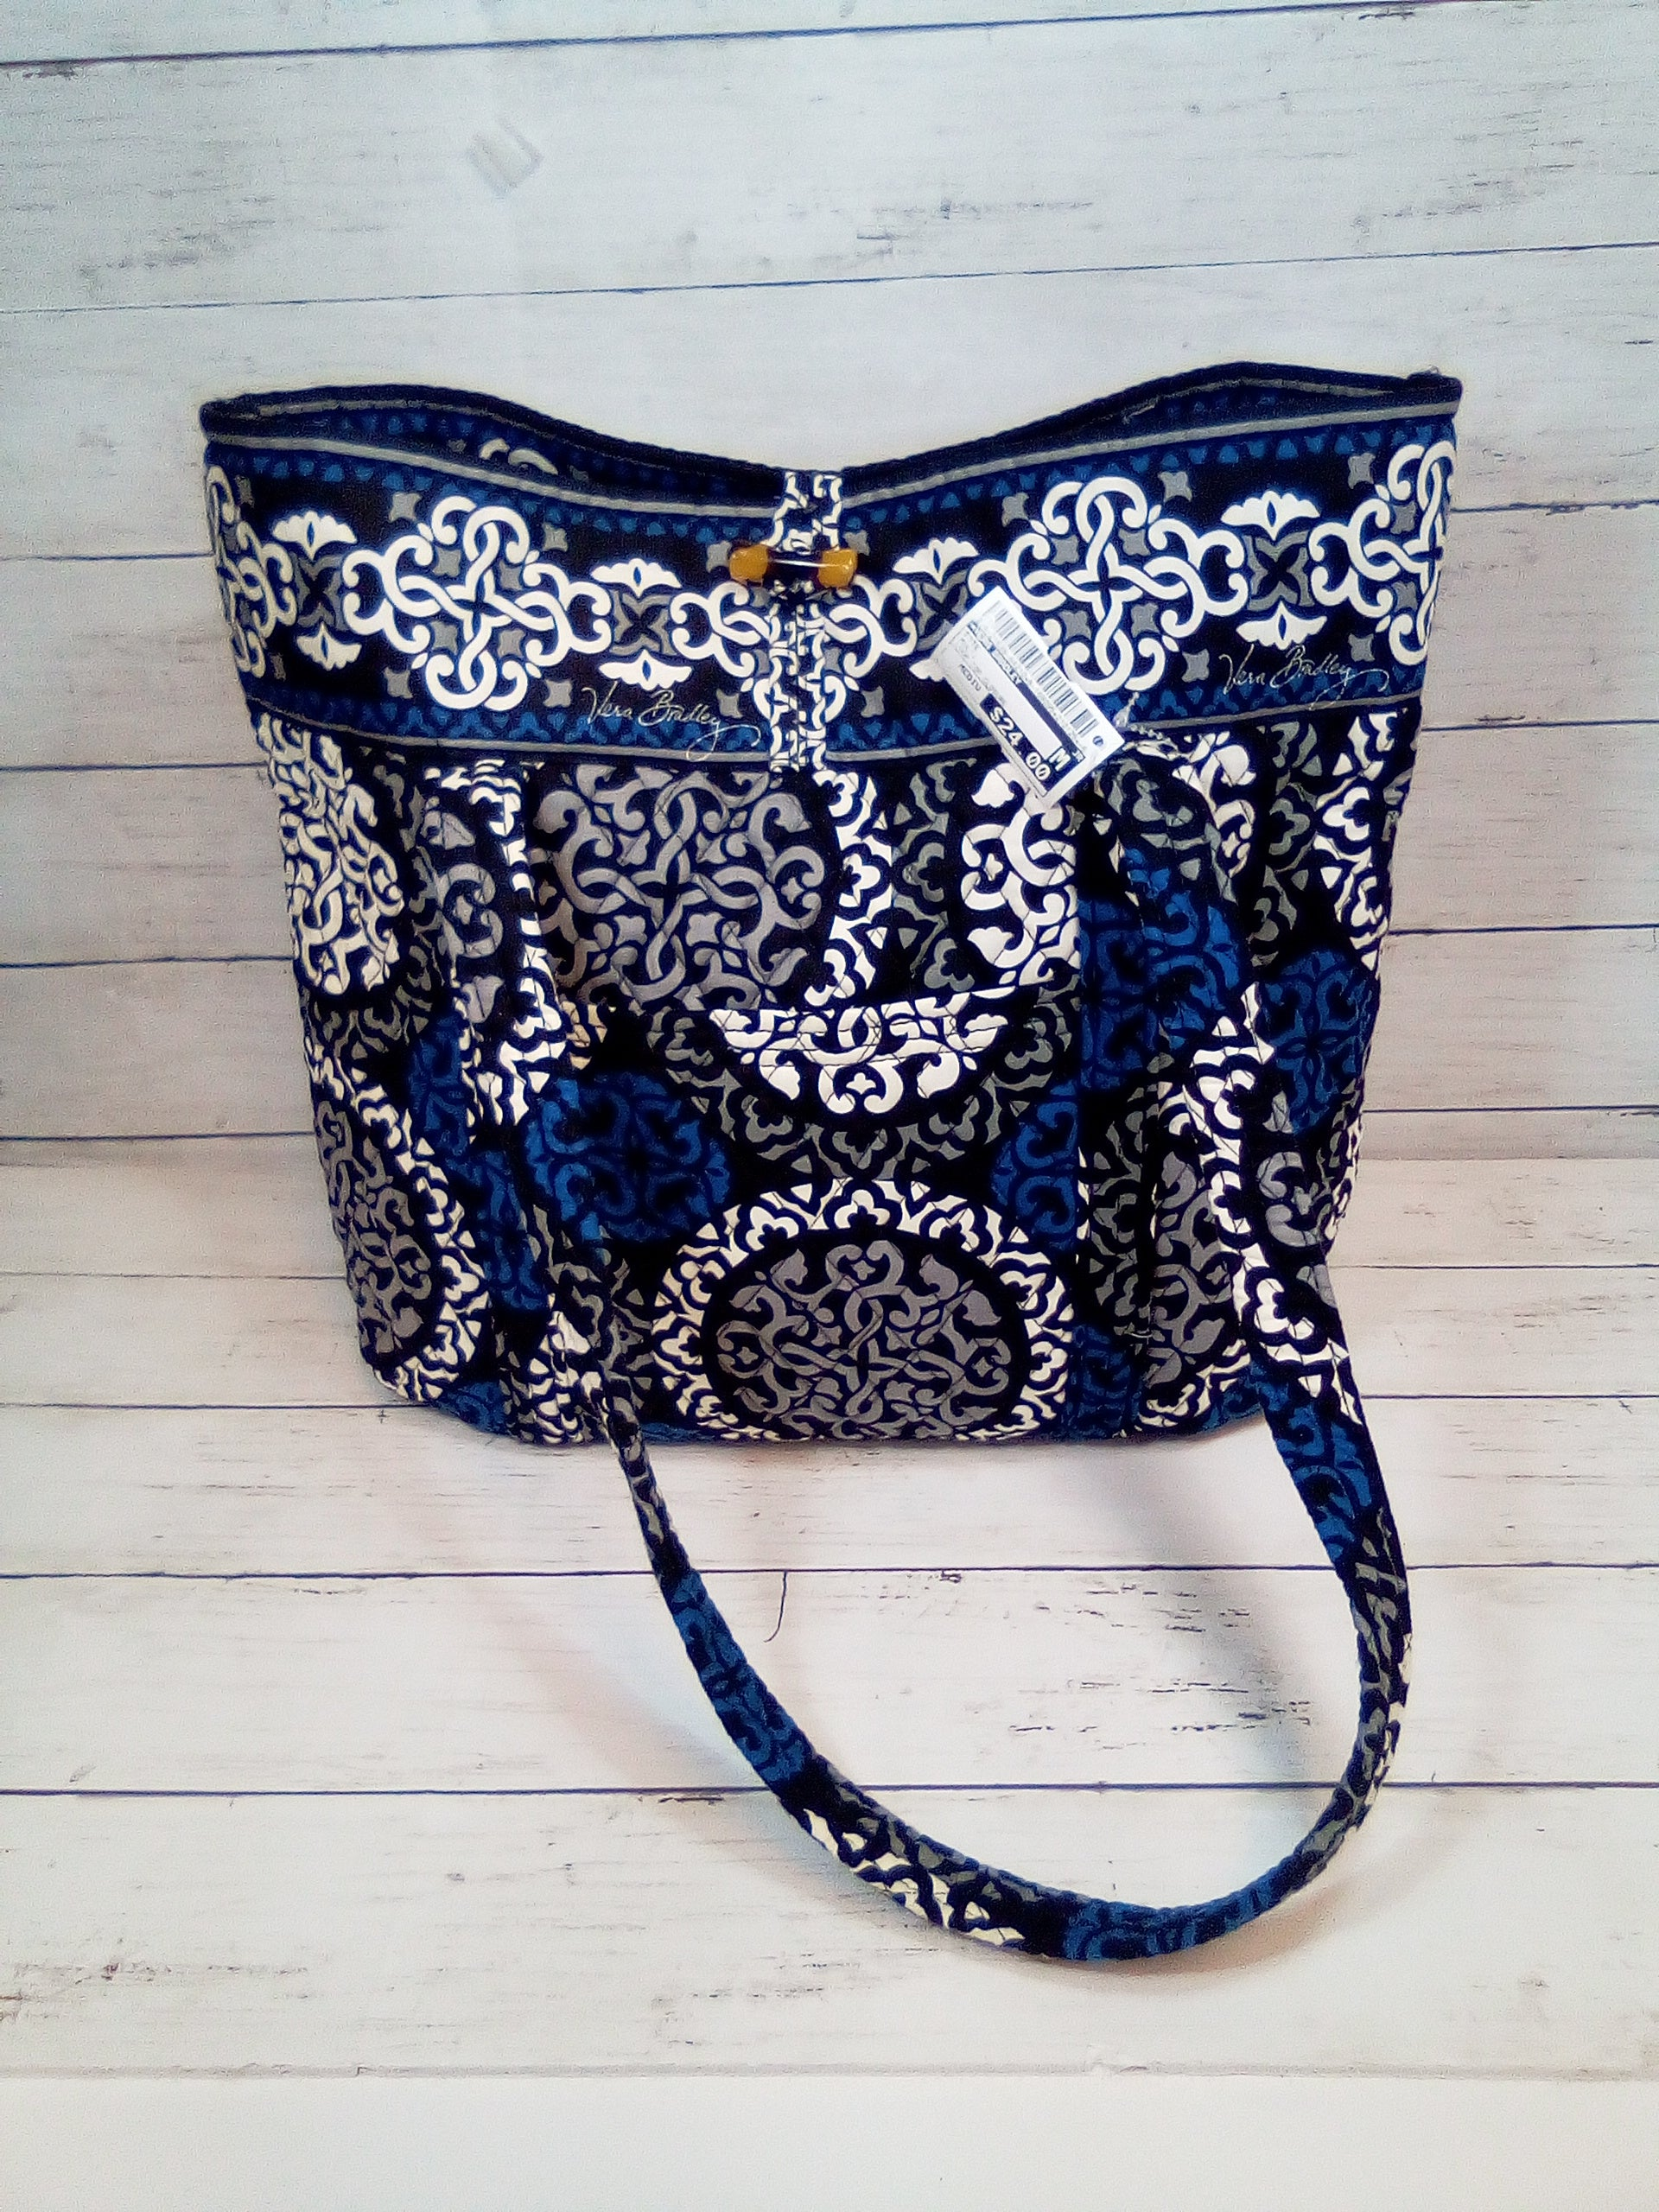 Primary Photo - BRAND: VERA BRADLEY <BR>STYLE: TOTE <BR>COLOR: MULTI <BR>SIZE: MEDIUM <BR>OTHER INFO: LOOP TOP CLOSURE <BR>SKU: 216-21638-64210